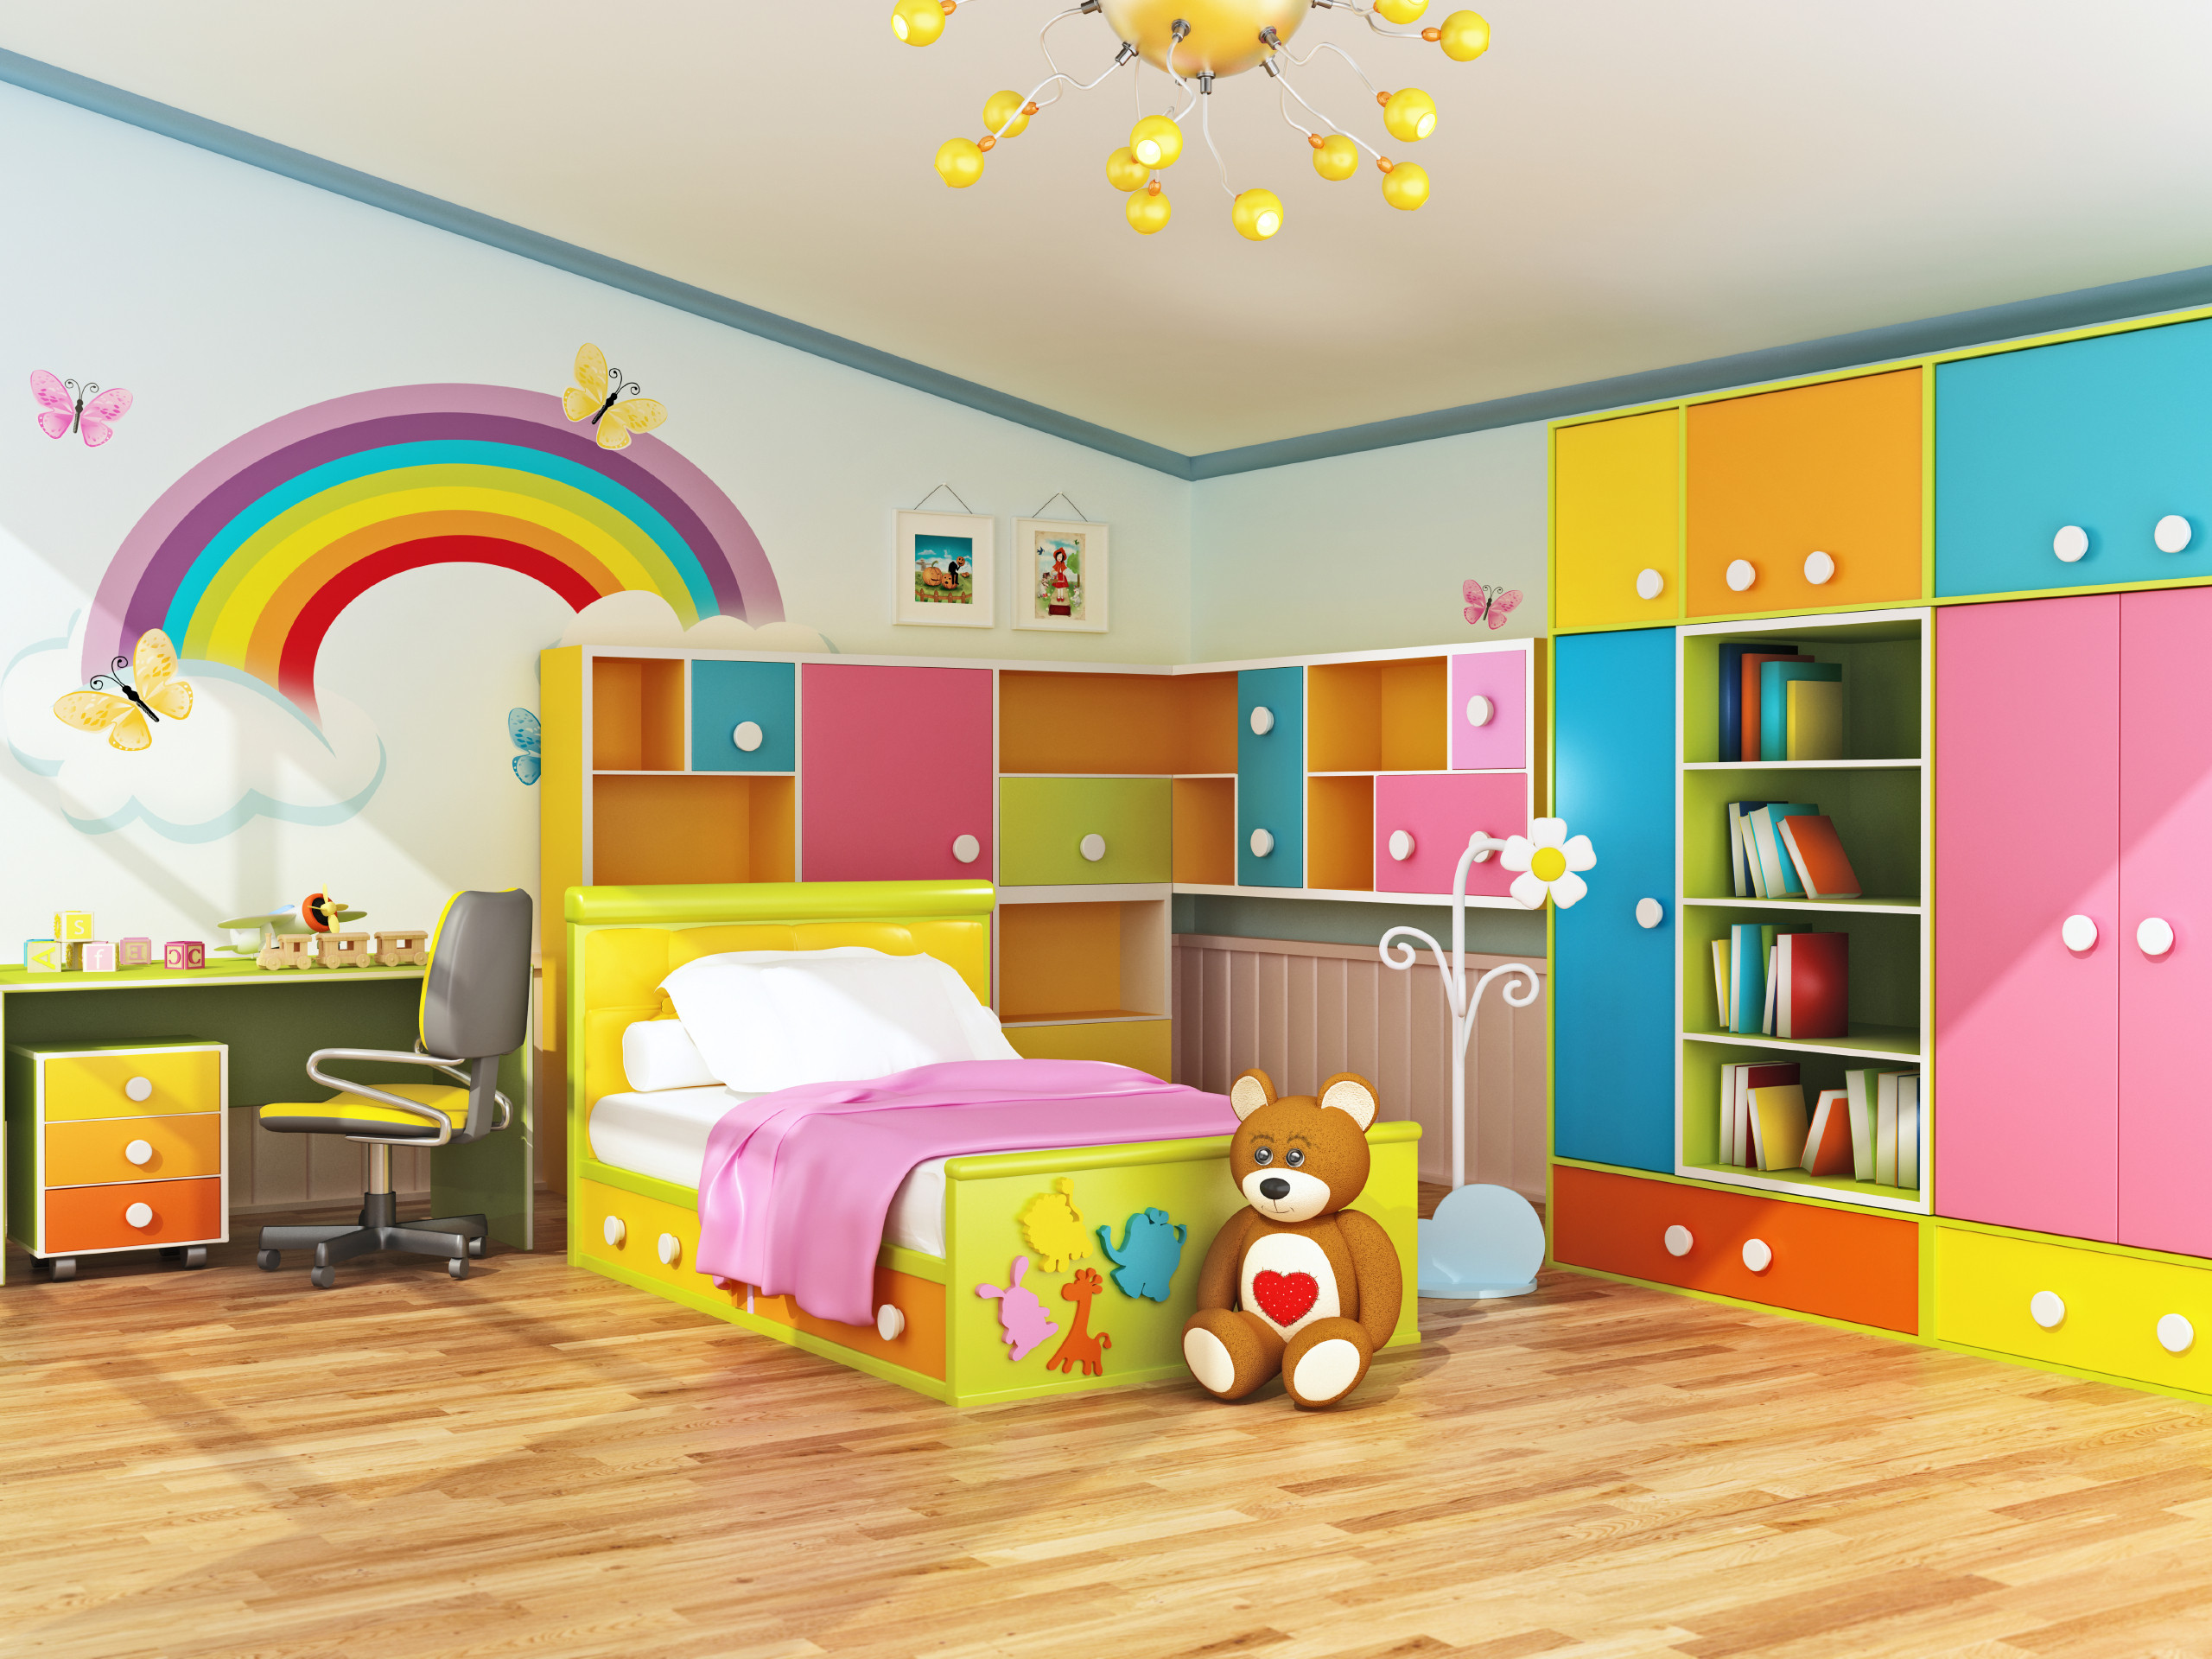 Best ideas about Pictures For Kids Room . Save or Pin Plan Ahead When Decorating Kids Bedrooms Now.